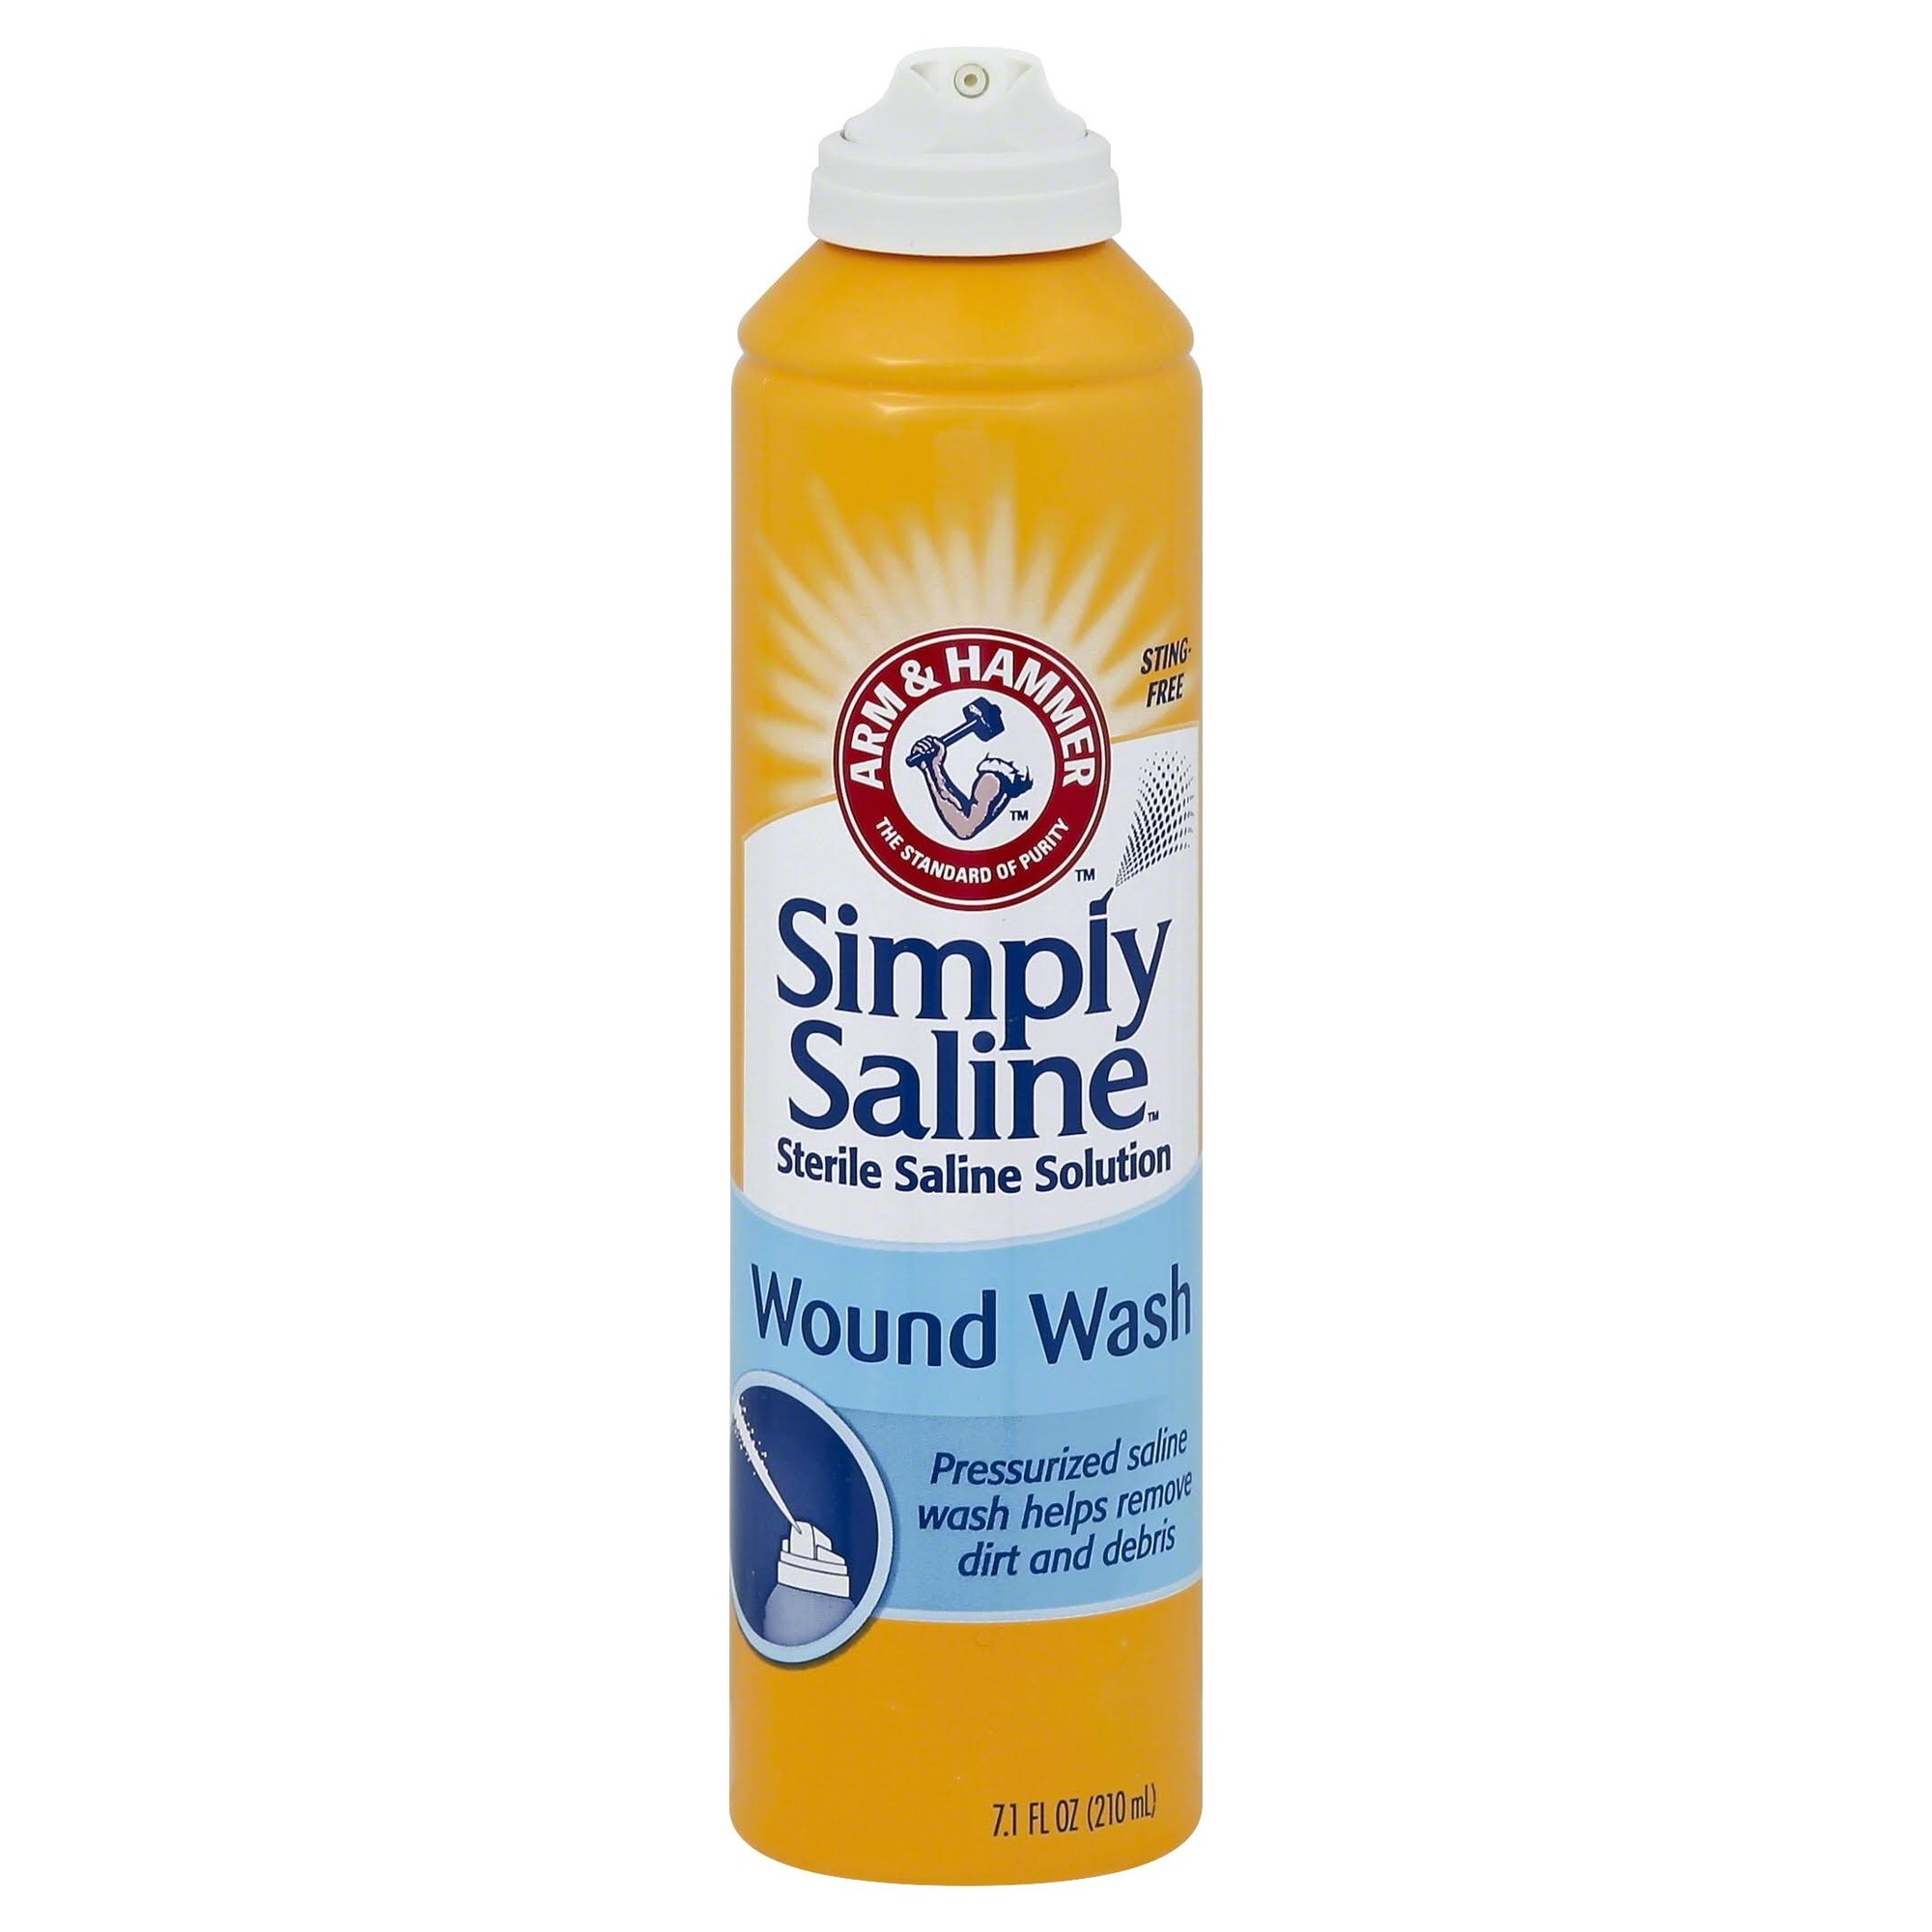 Church & Dwight Simply Sterile Wound Wash Saline 7 oz